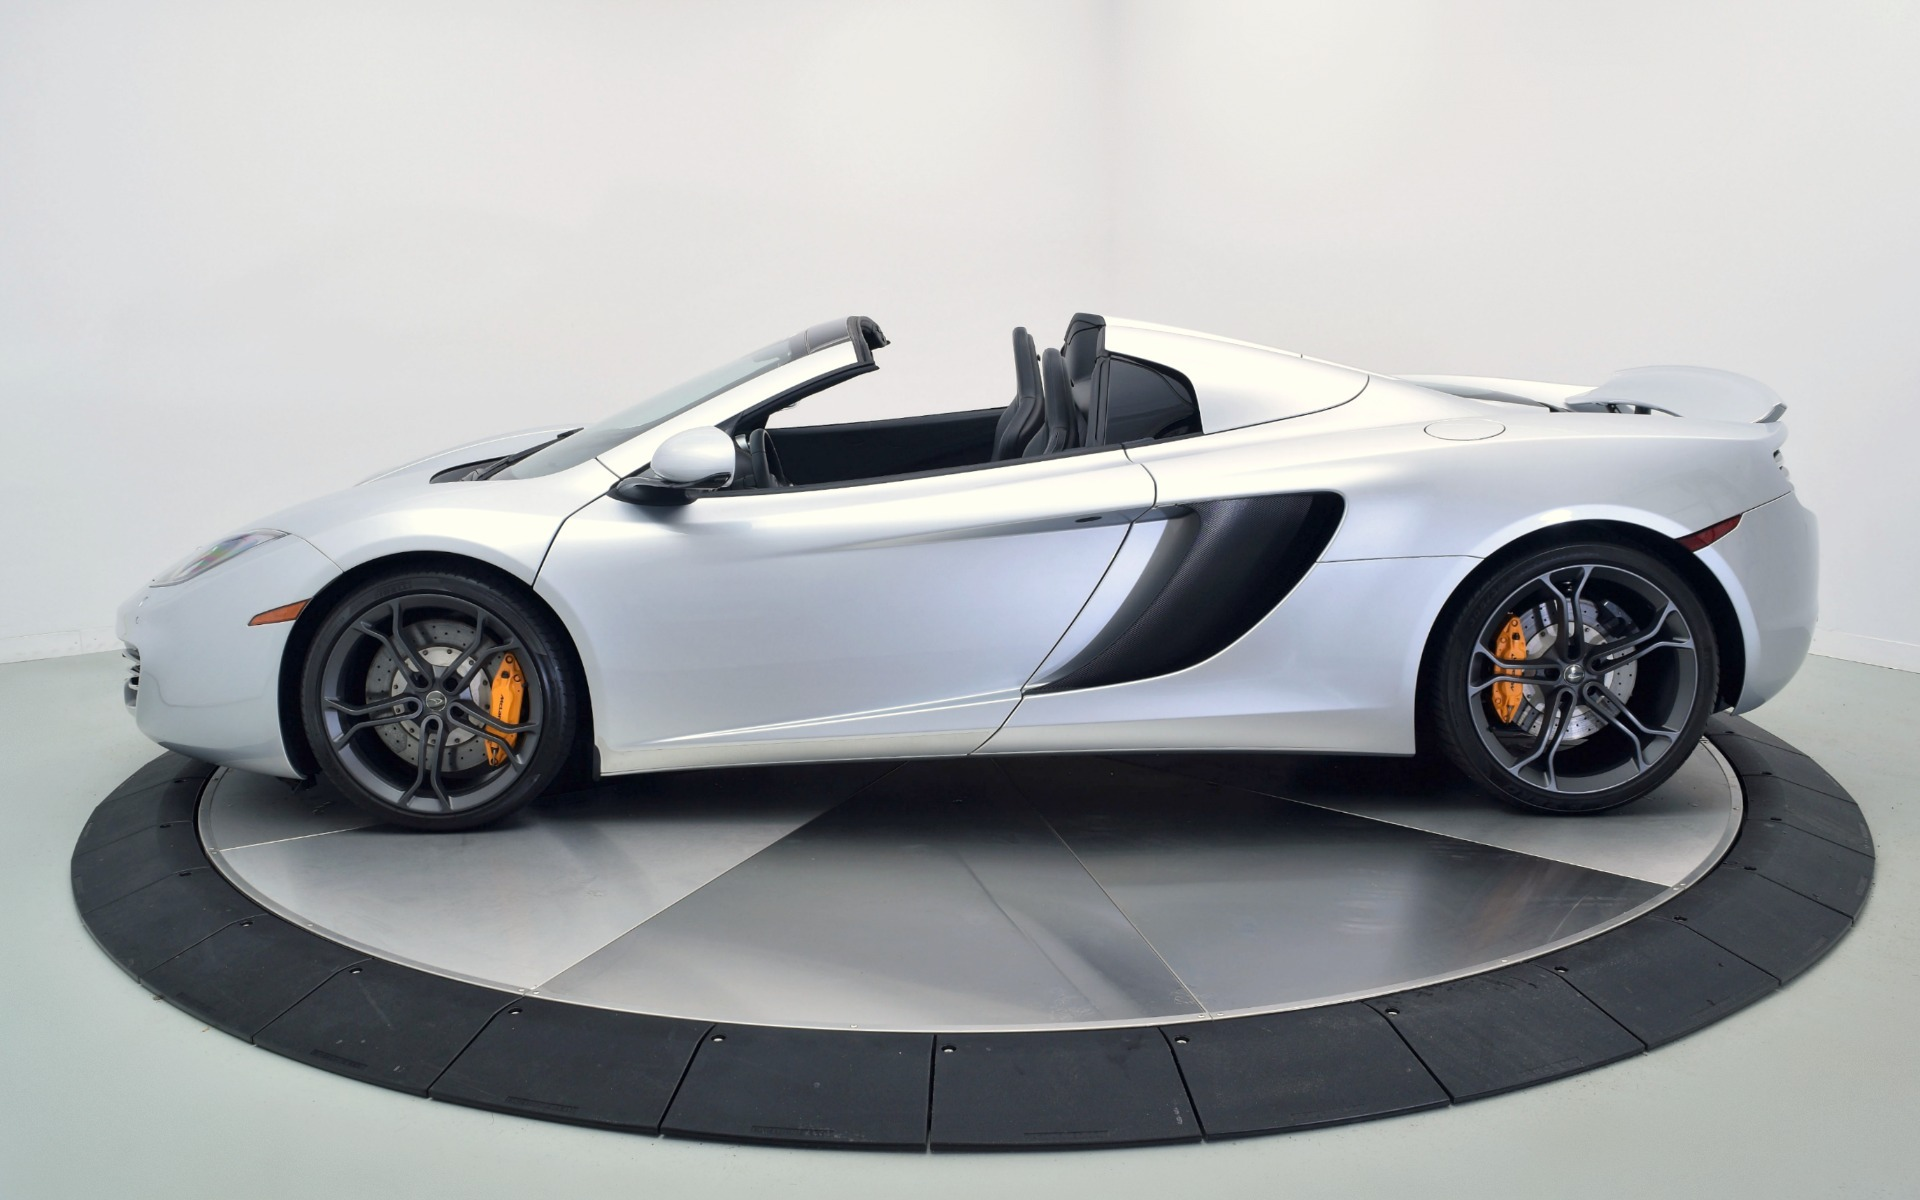 2014 mclaren mp4 12c spider for sale in norwell ma 003120 mclaren boston. Black Bedroom Furniture Sets. Home Design Ideas